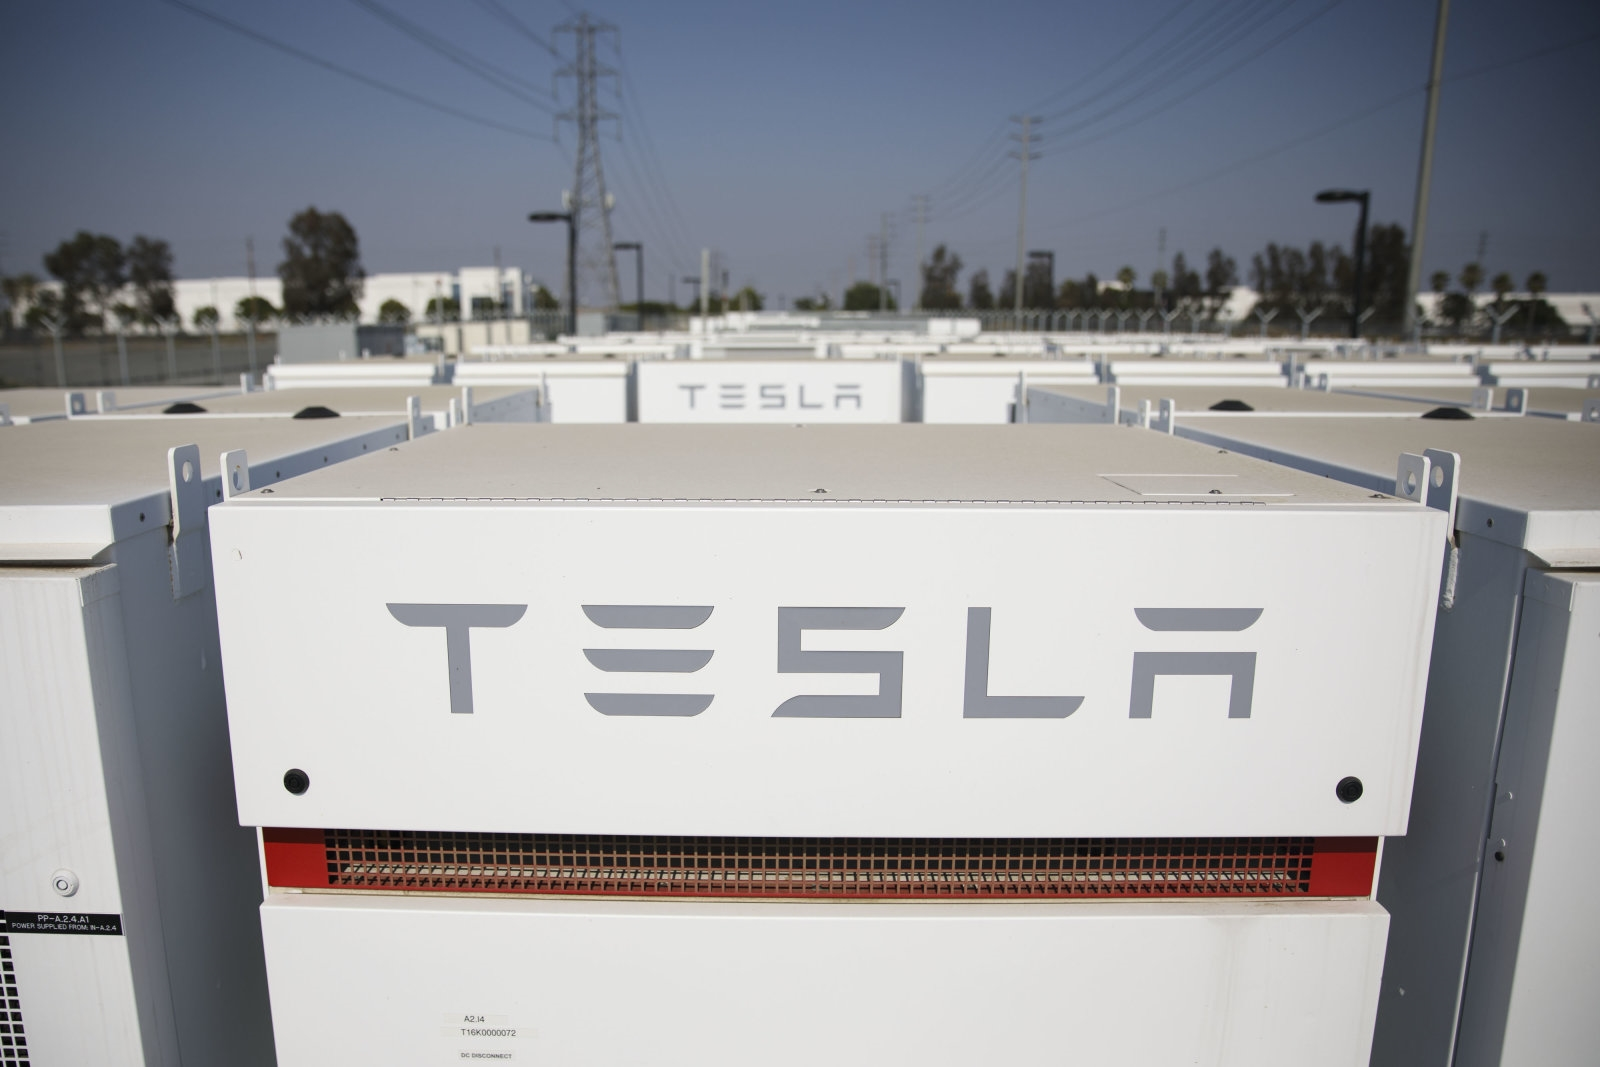 Tesla's next California energy storage project may be its largest yet | DeviceDaily.com